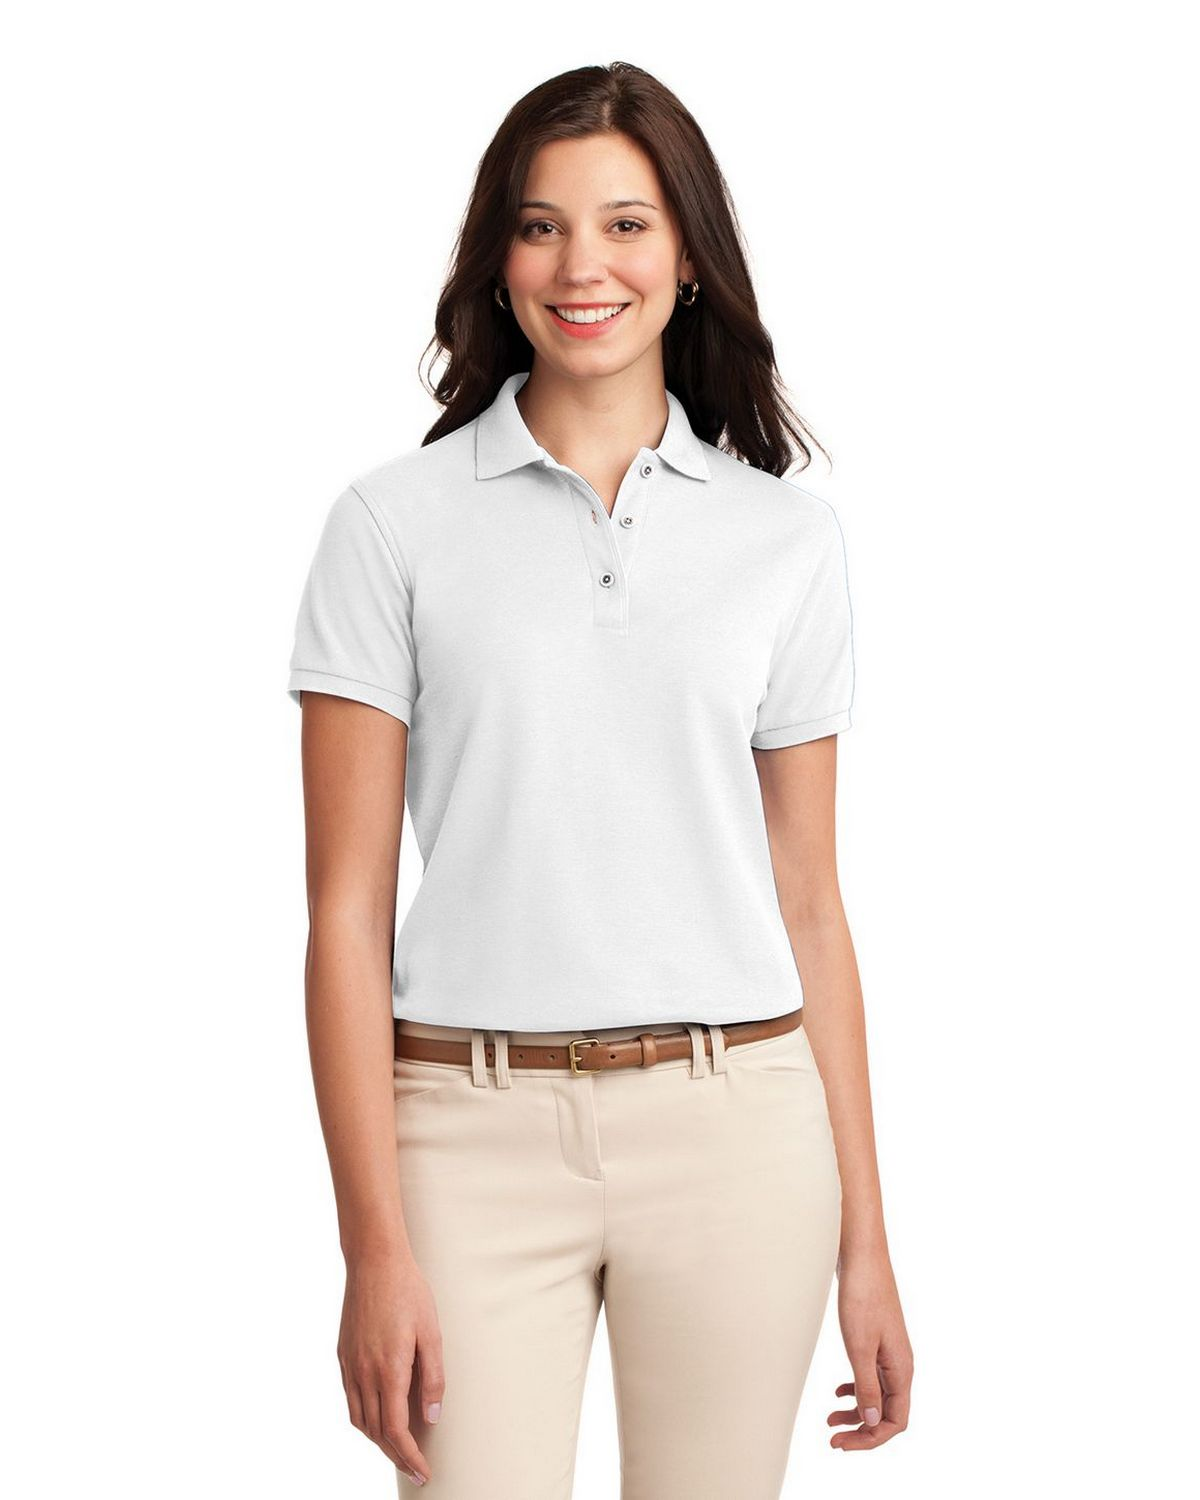 Port Authority L500 Women's Silk Touch Polo - White - XS #silk